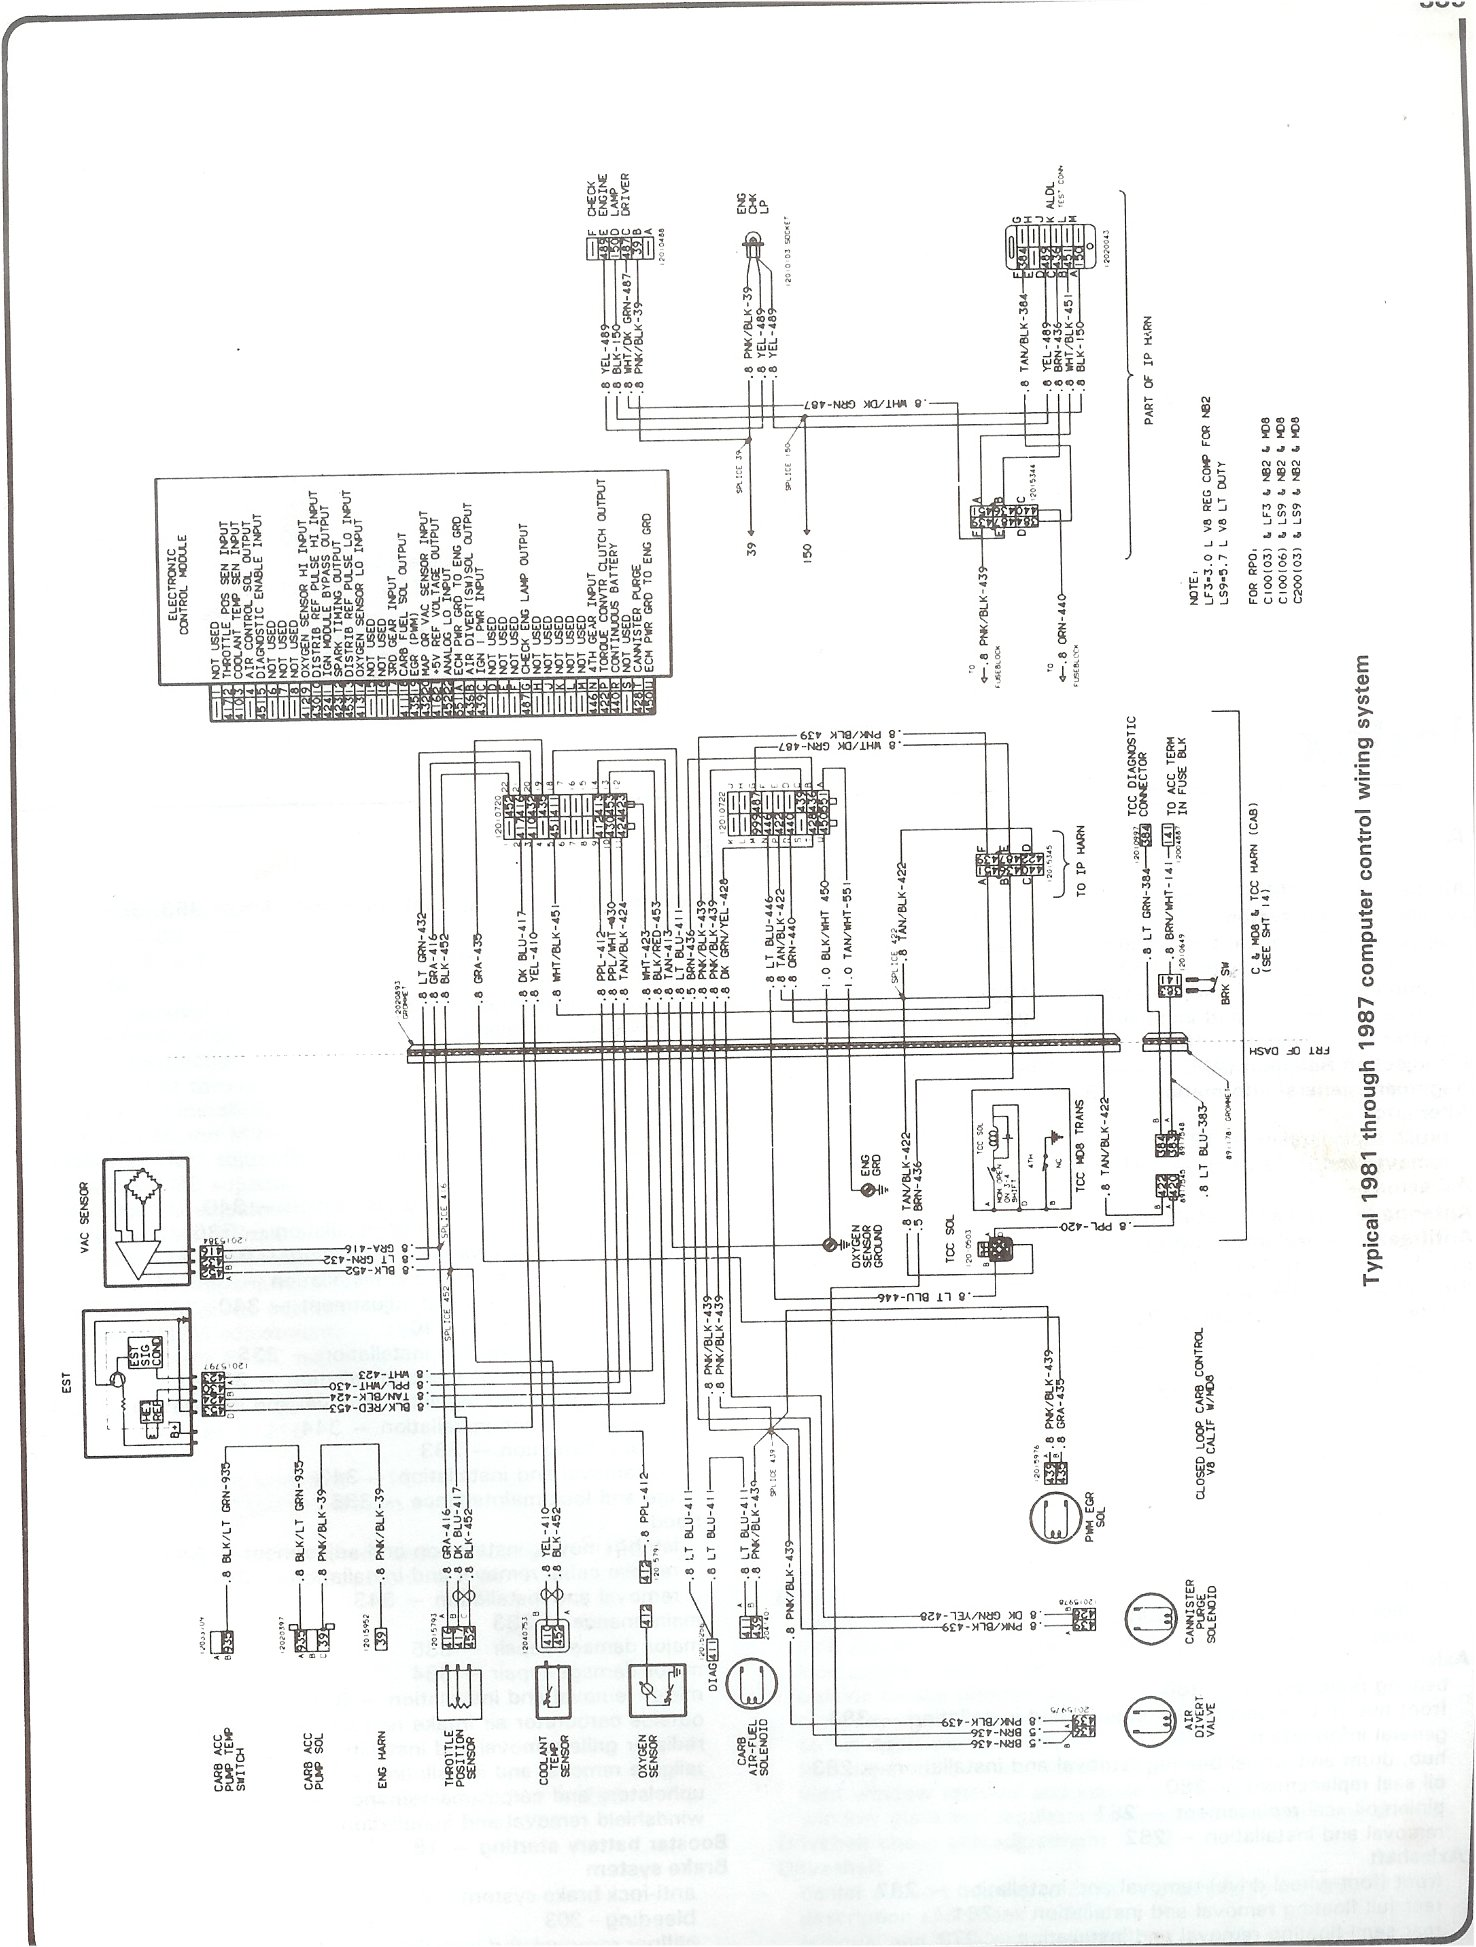 81 87_computer_control_wiring complete 73 87 wiring diagrams 1984 chevy c10 wiring diagram at edmiracle.co